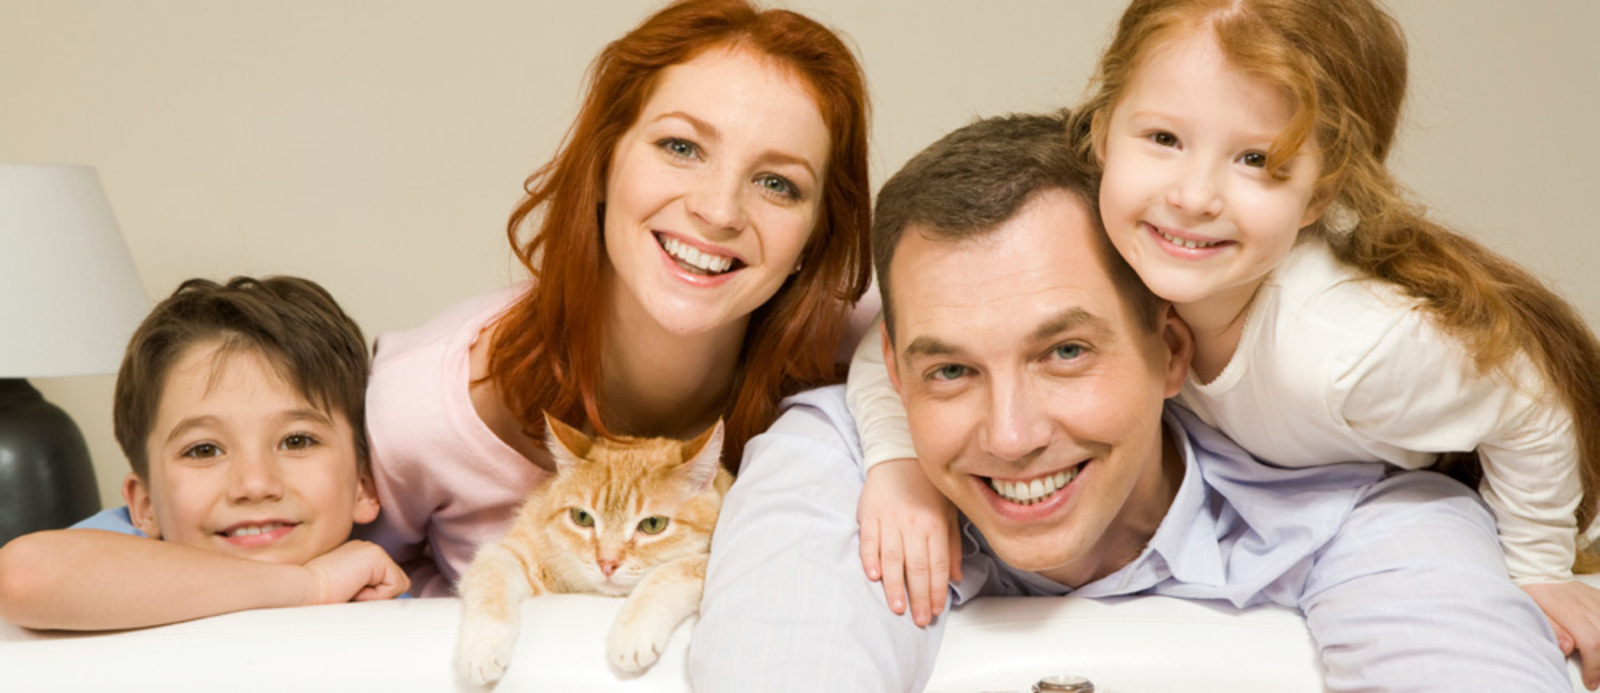 huge-happy-family-with-healthy-cat.jpg